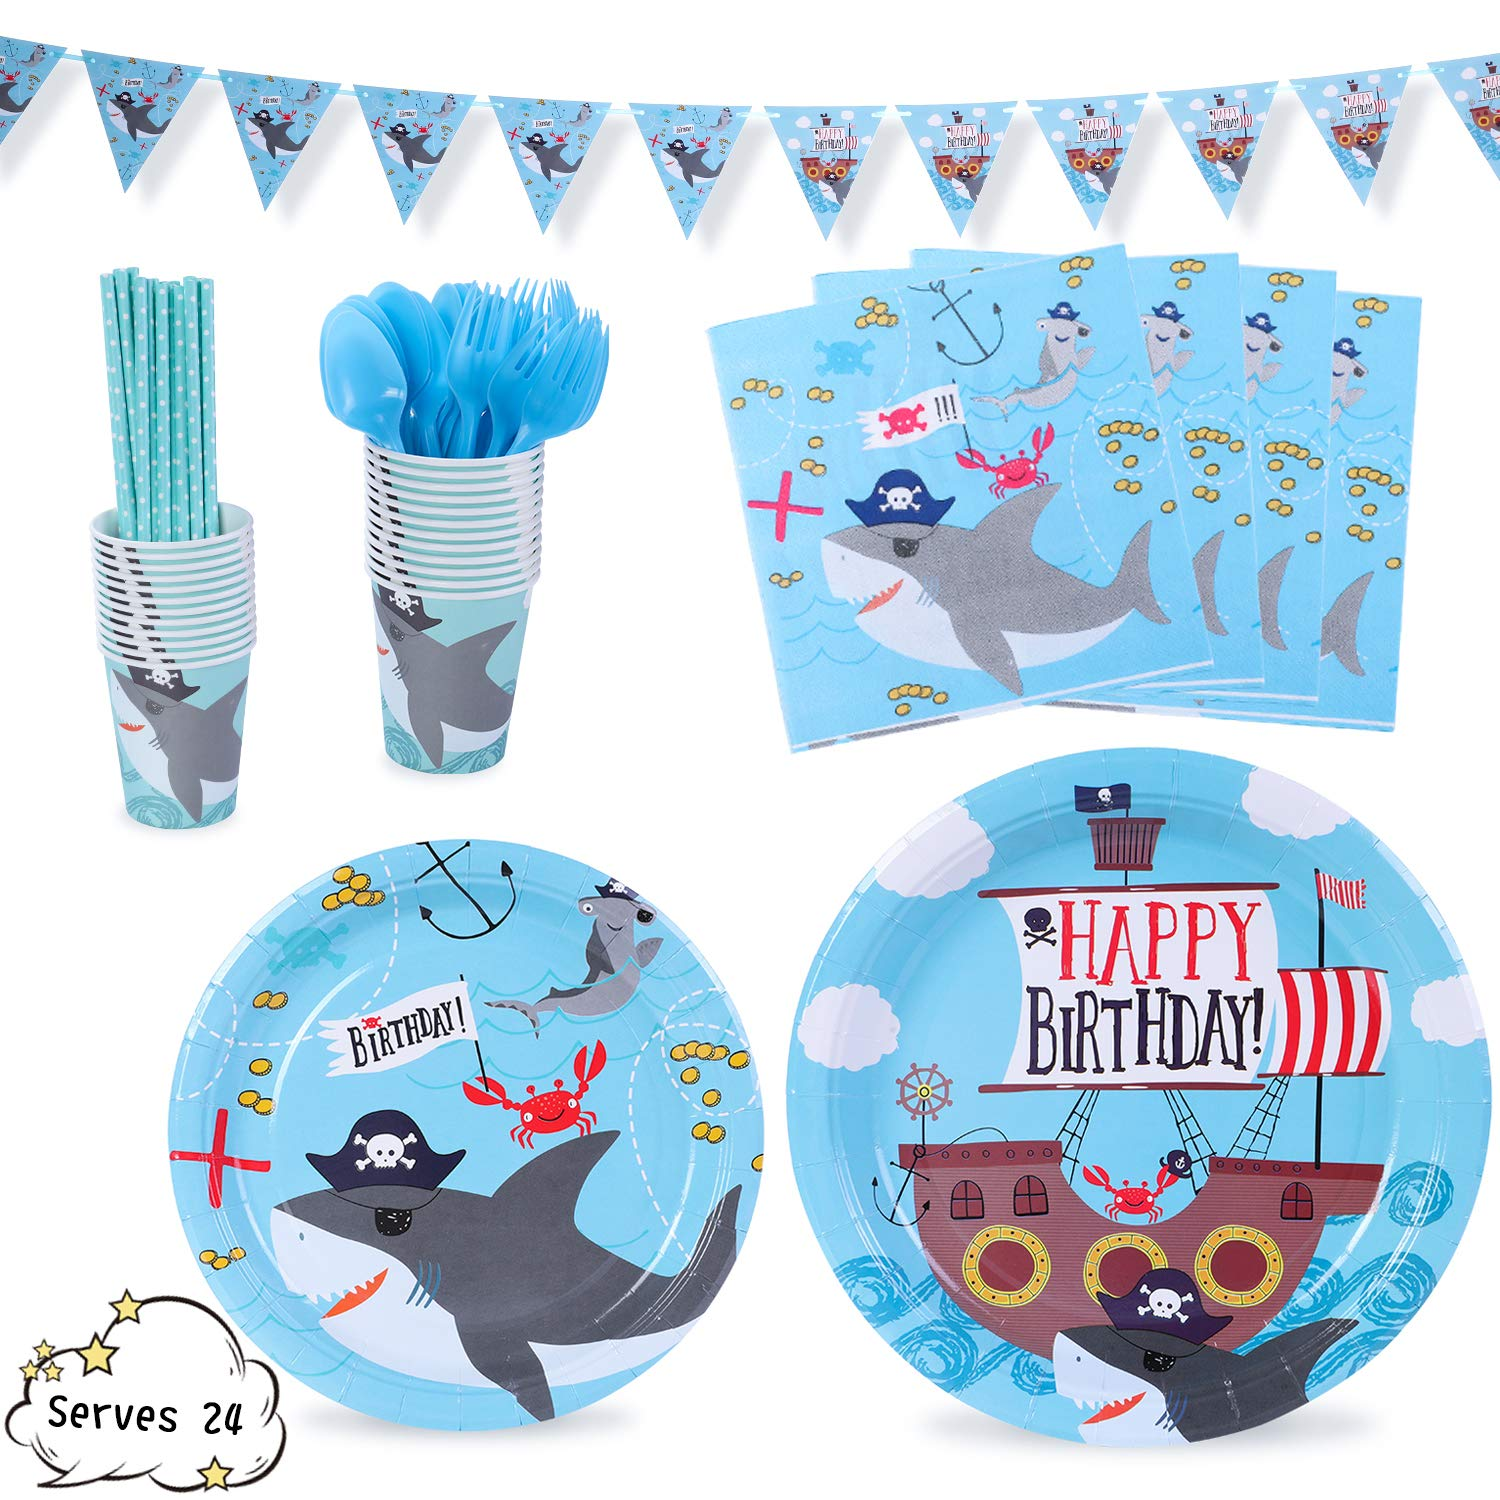 Shark Party Supplies Decorations Pirate Corsair Ocean Dinnerware 169 Pcs Serves 24 Includes 7''&9'' Paper Plates Napkins Straws Knives Forks Cups Banner For Birthday, Shark Priate Themed Parties by Party Family